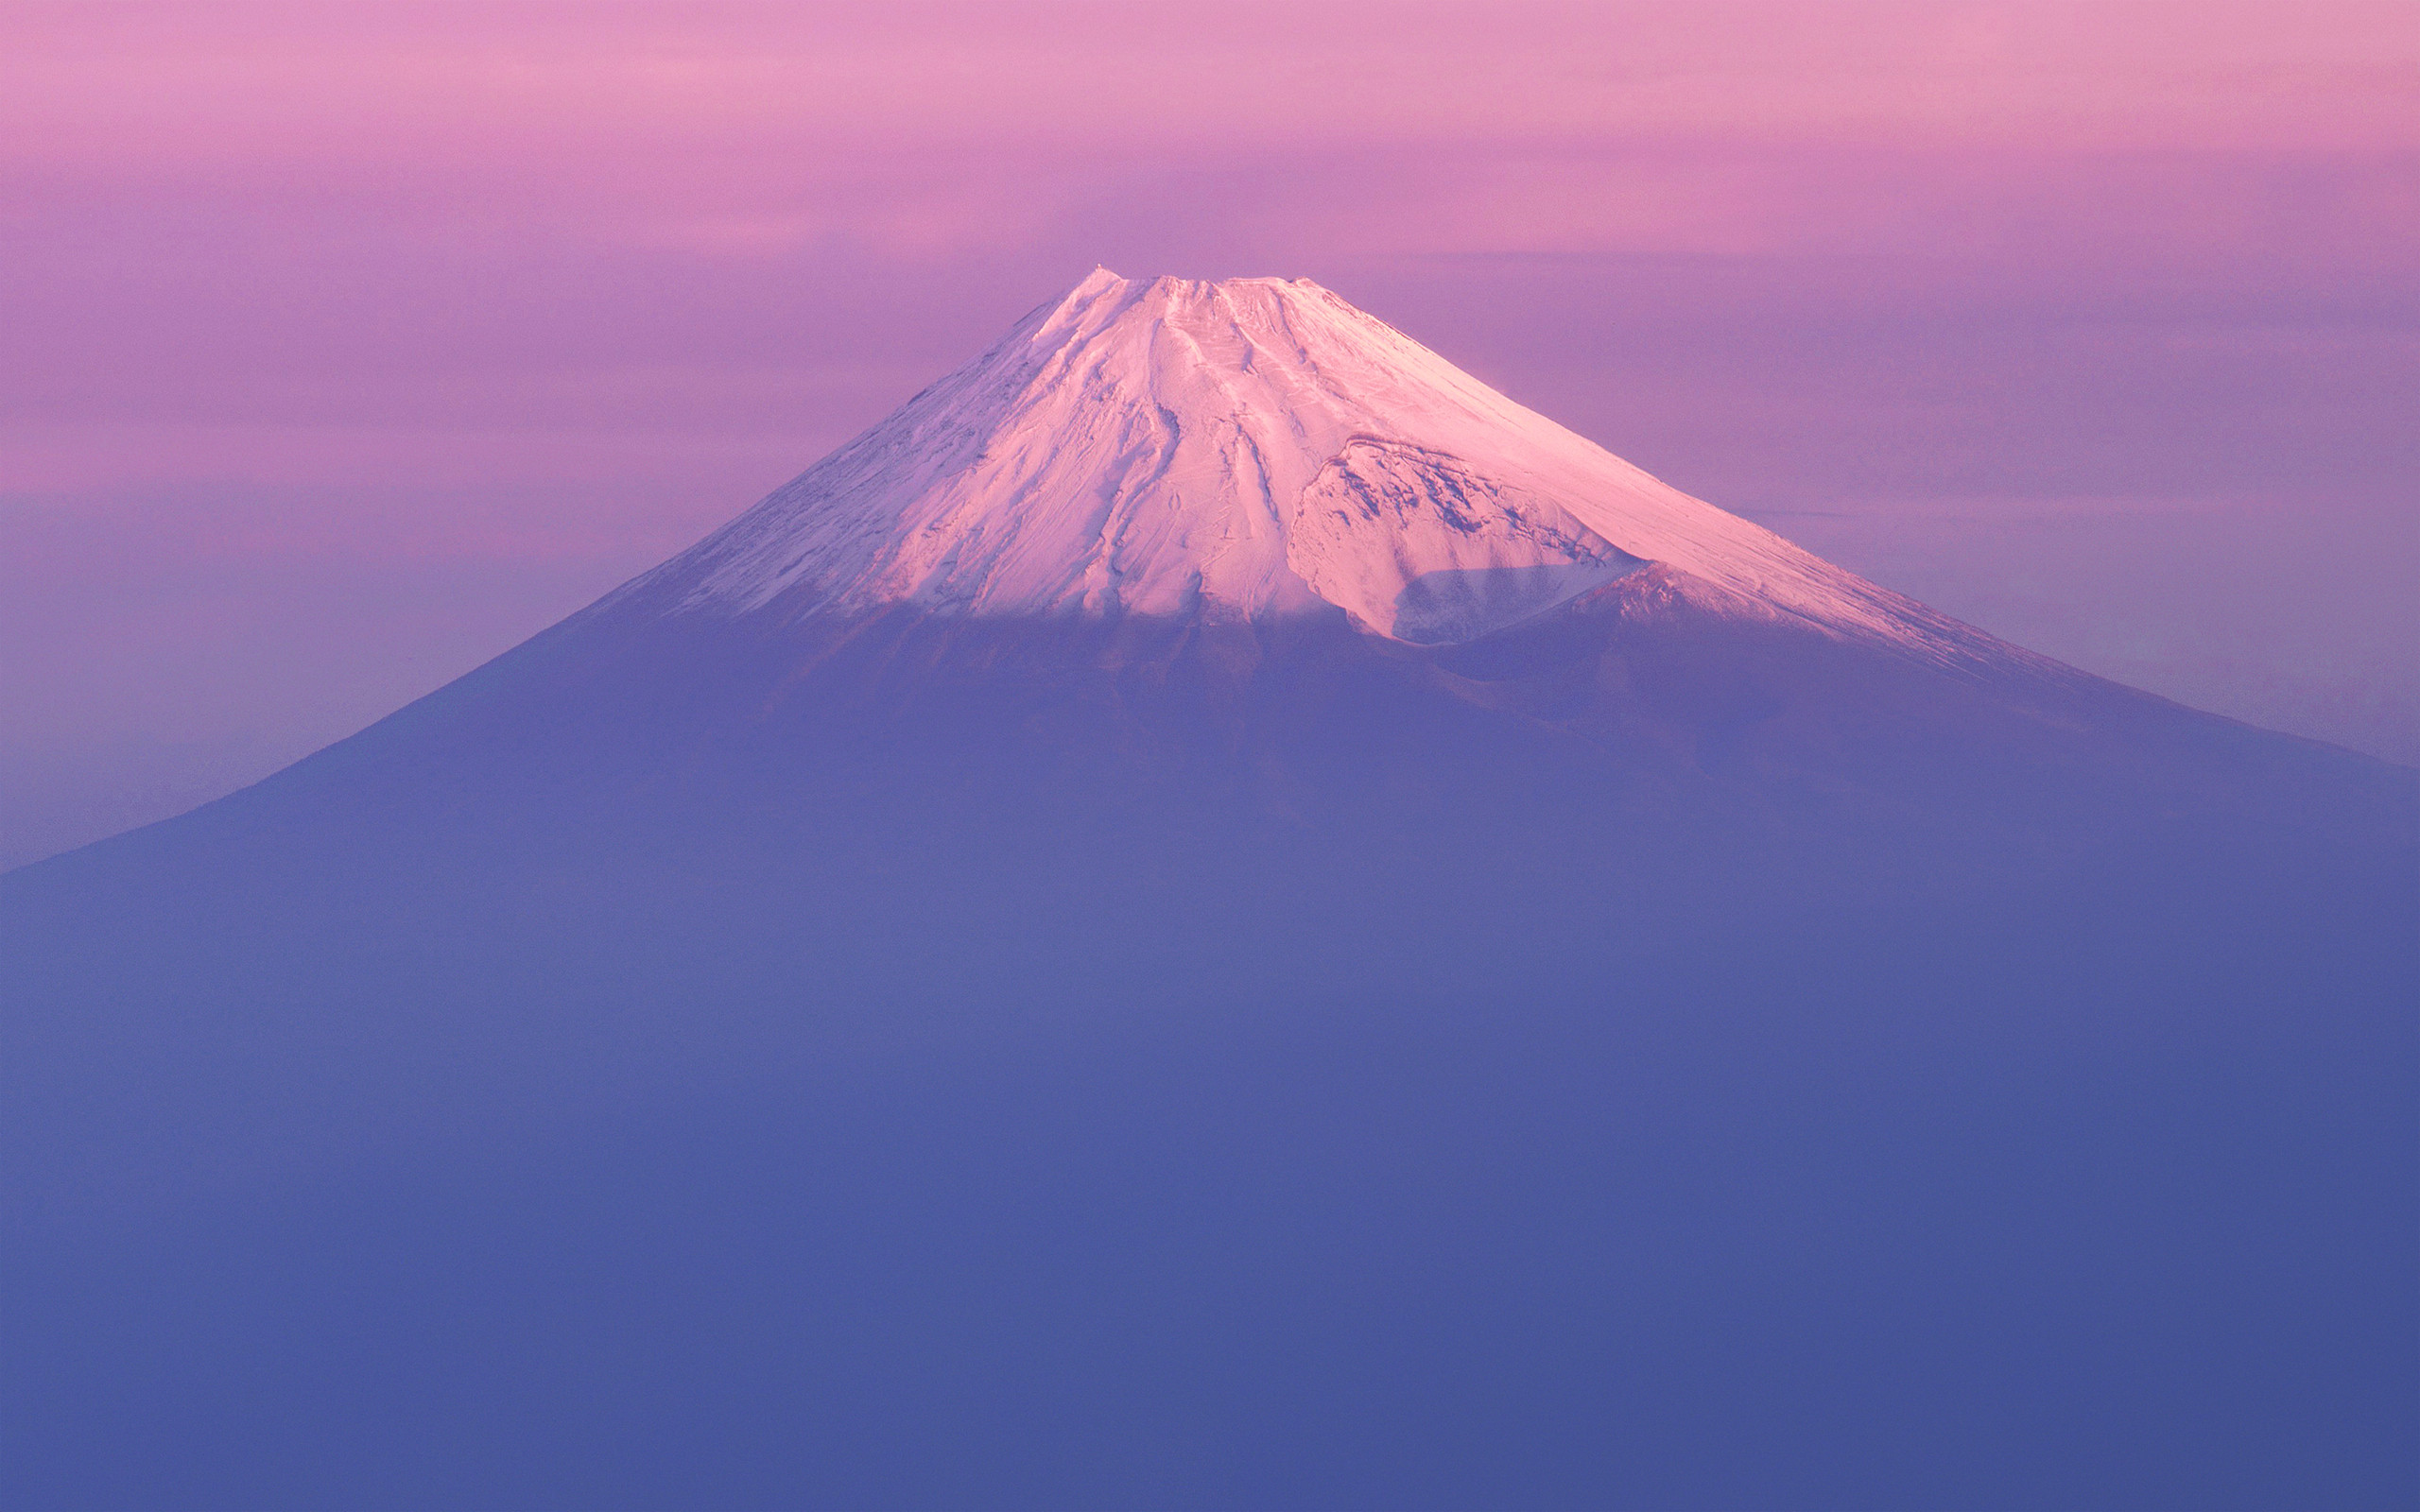 Fuji Mountain Wallpaper oficial do Mac OS X 107 Lion Beta   Imgur 2560x1600